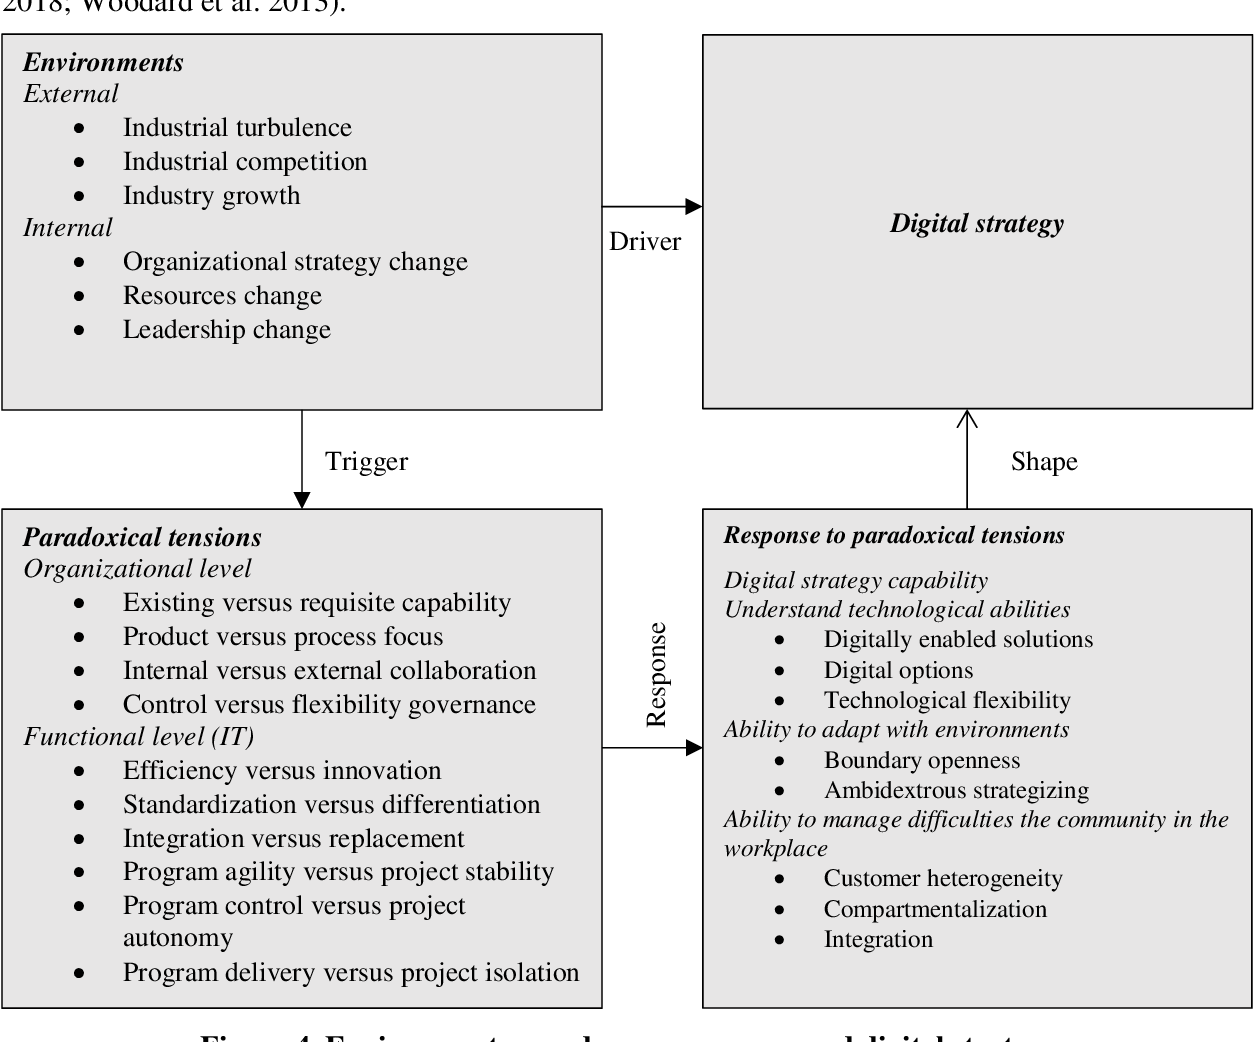 PDF] Digital strategy patterns in information systems research ...